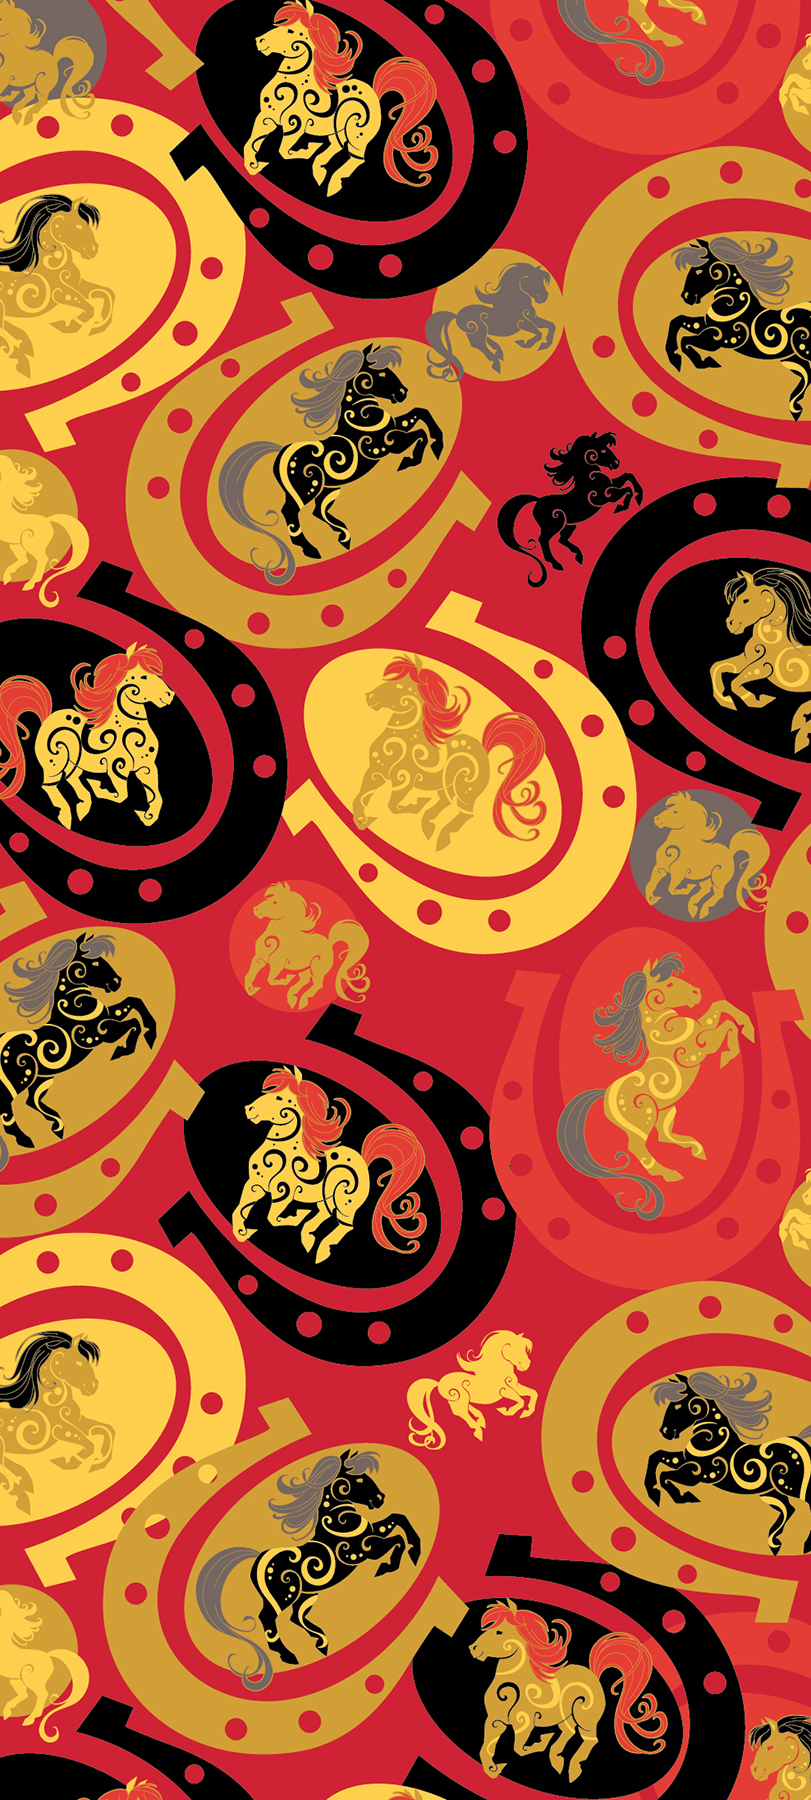 decorative_show_horses_in_horseshoe_pattern